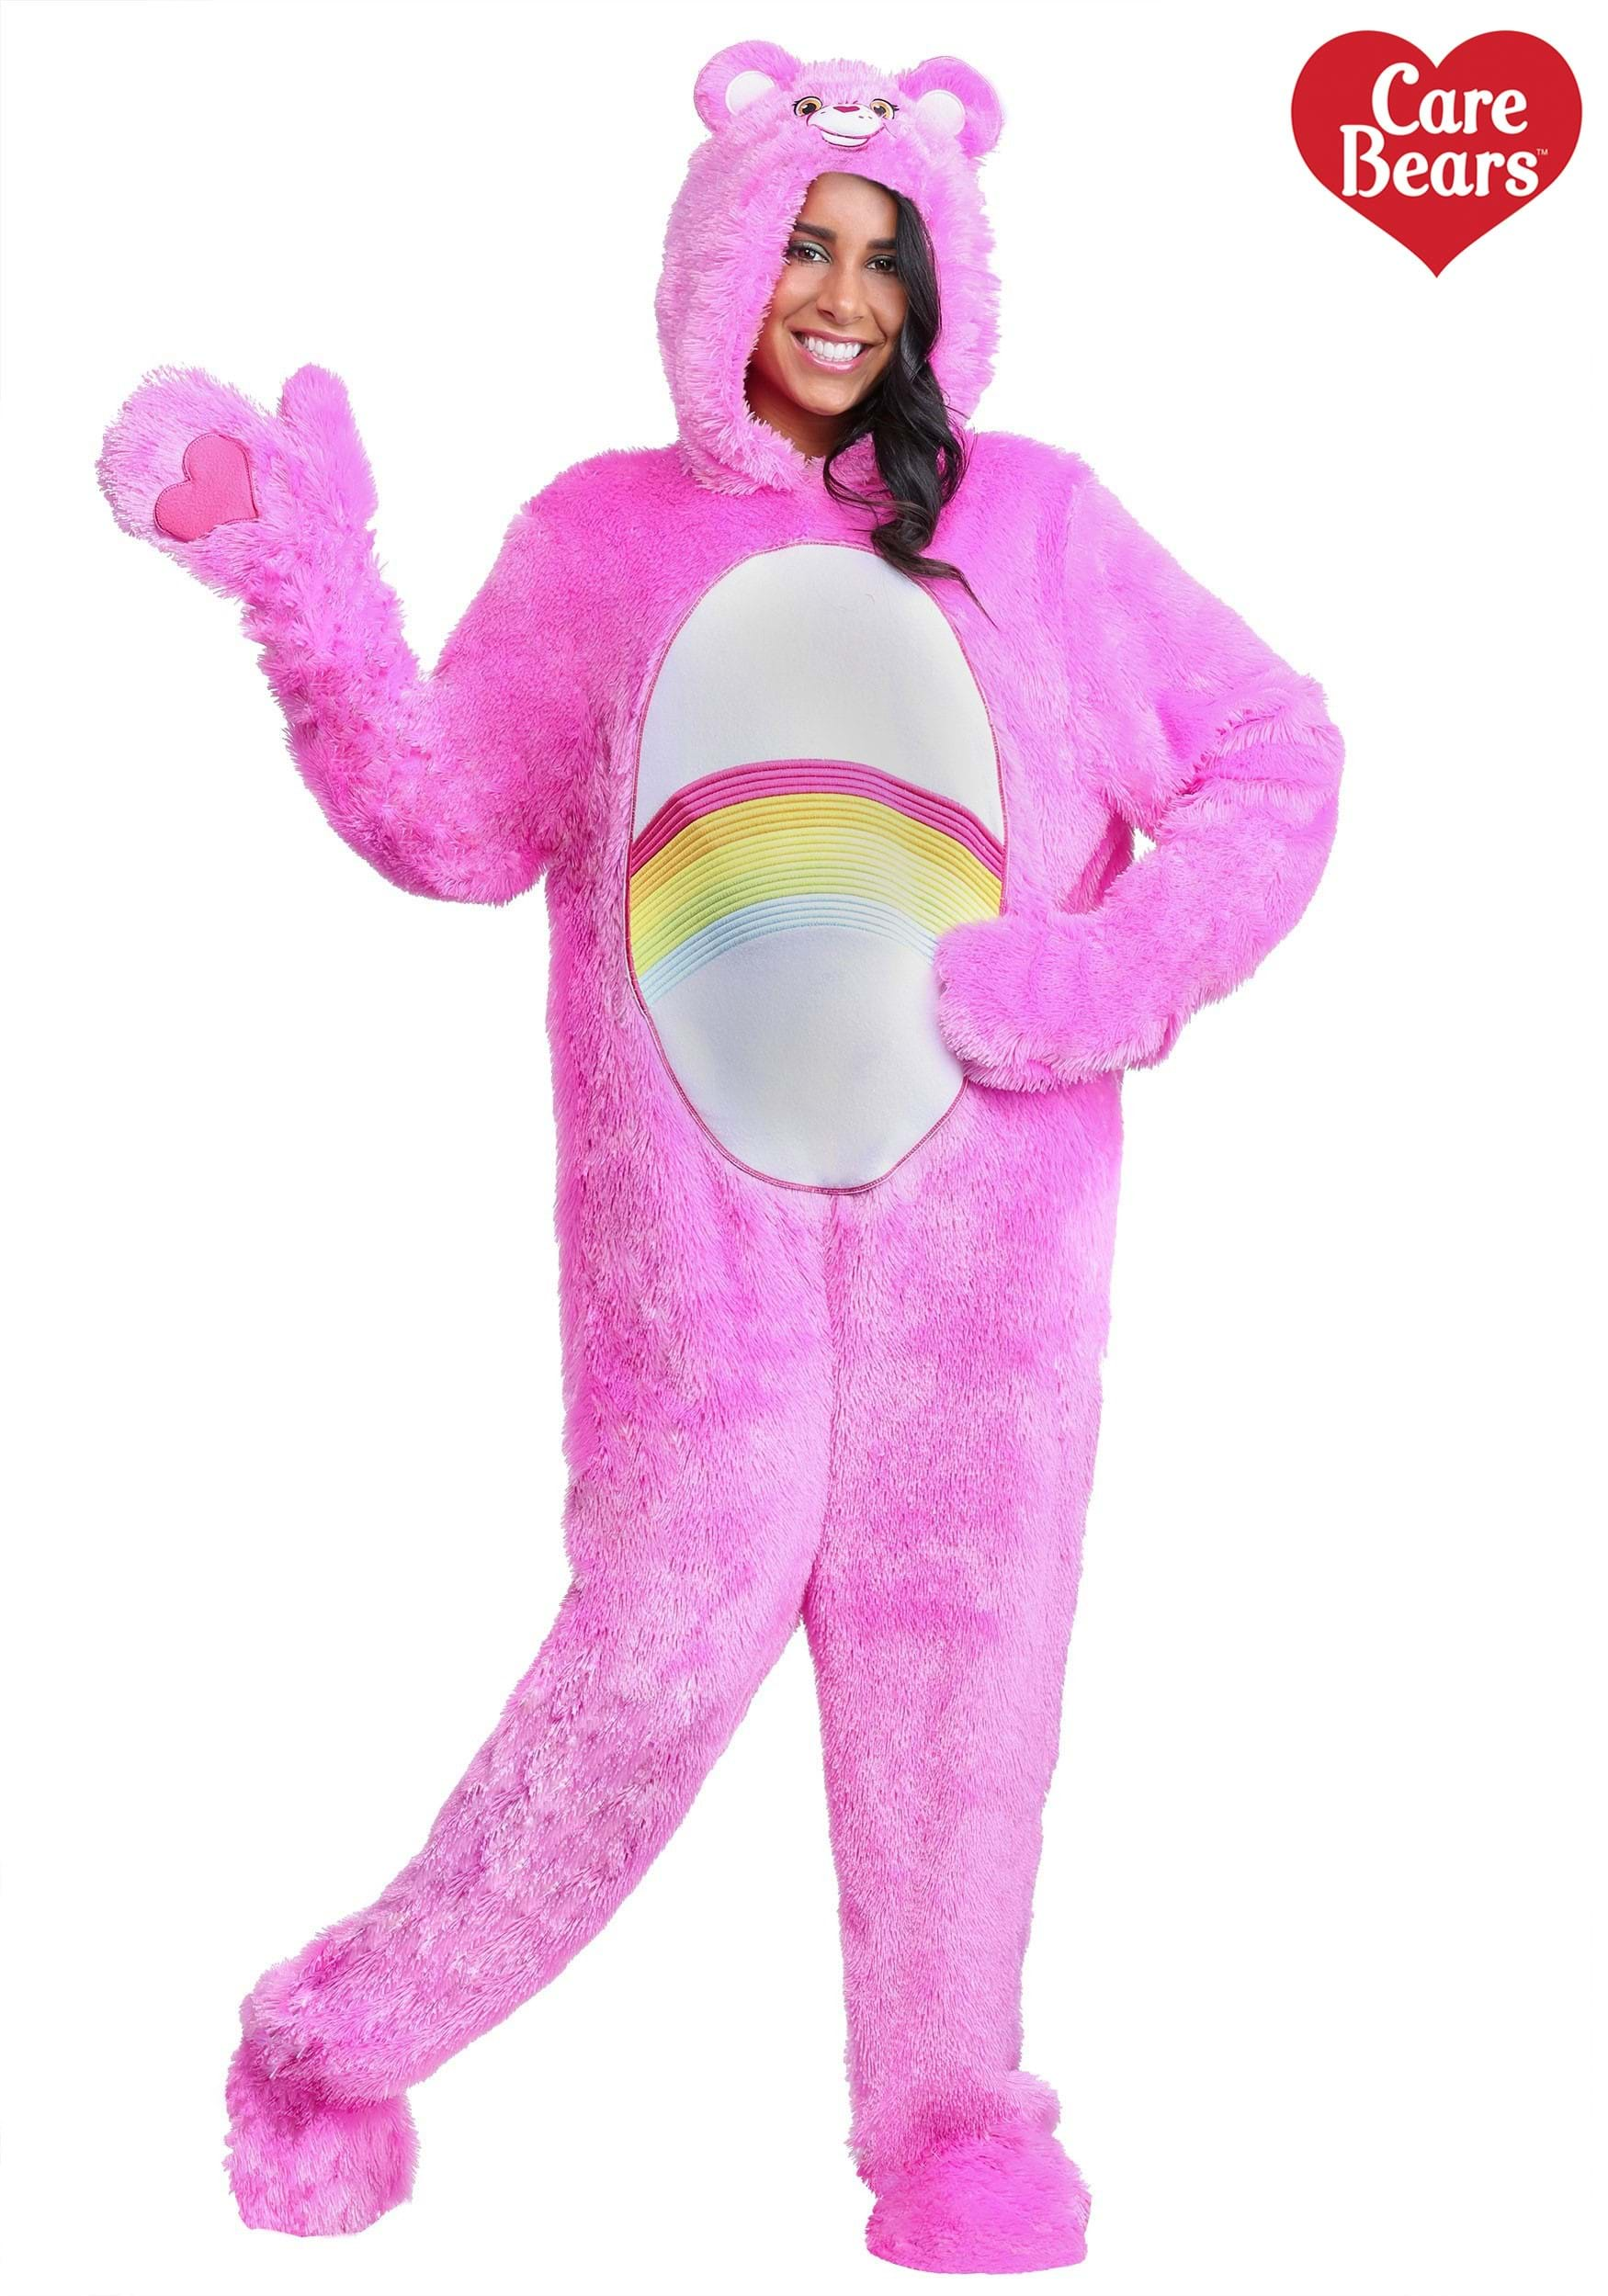 A adult sized care bear costume